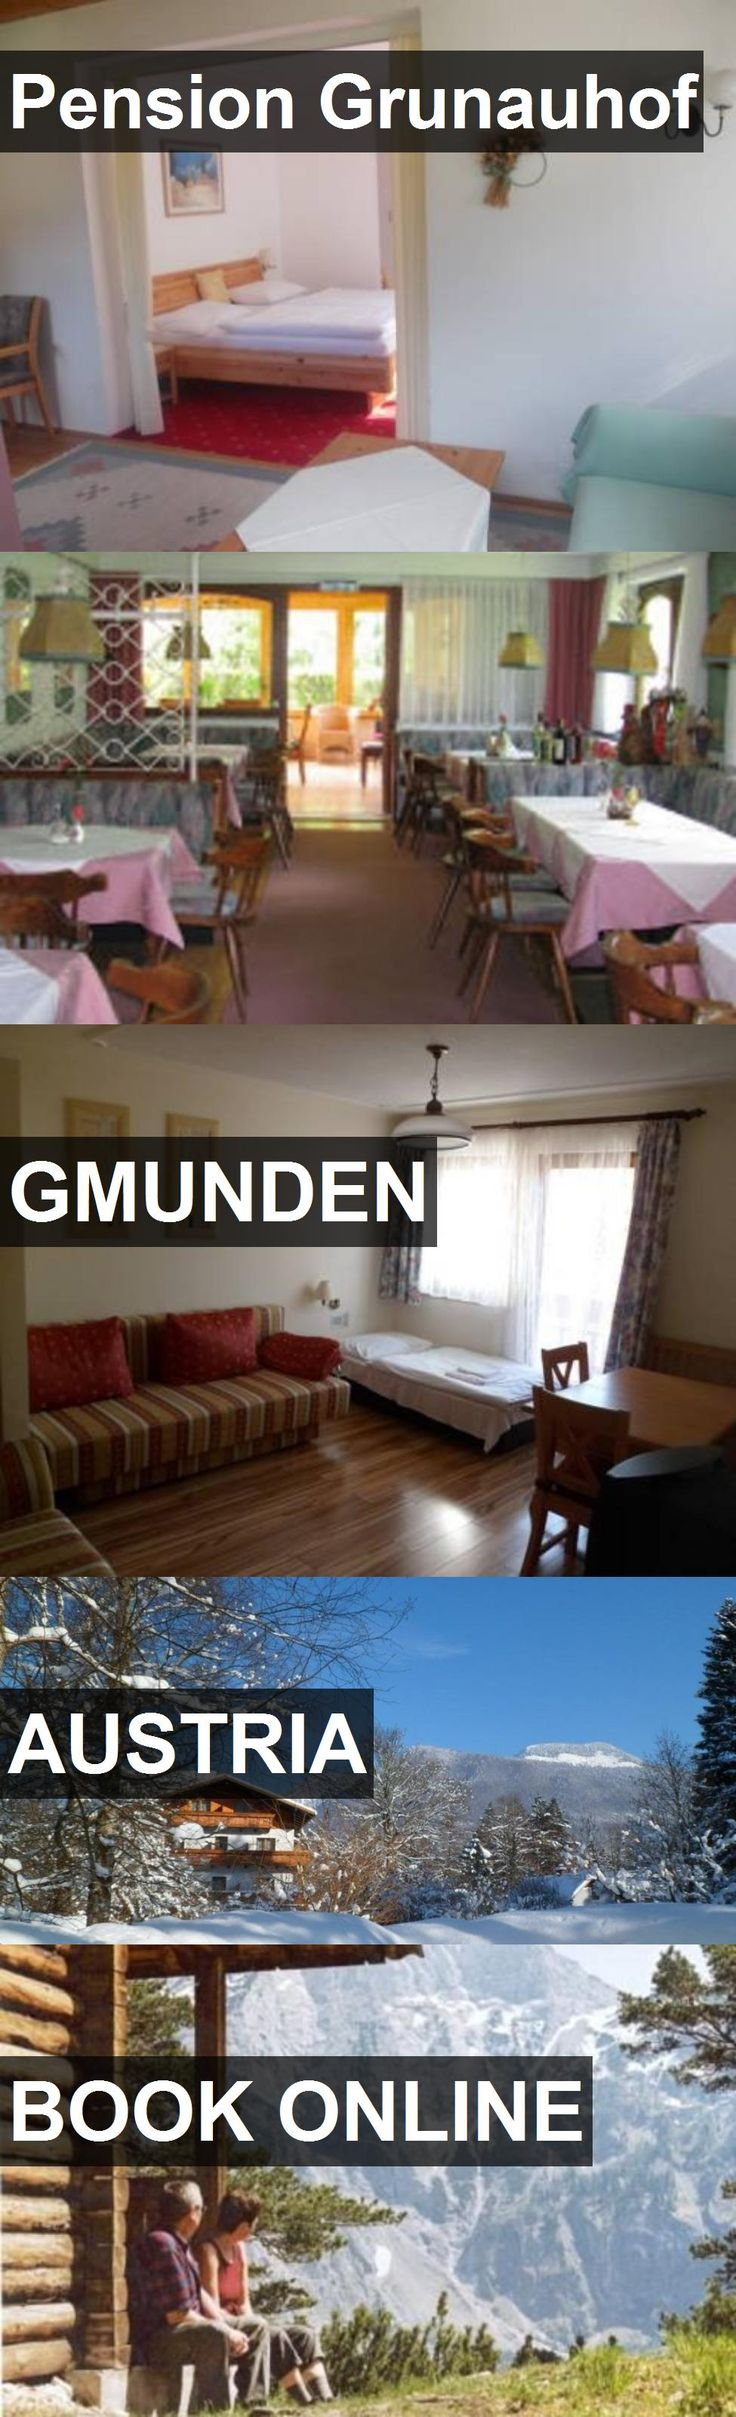 Hotel Pension Grunauhof in Gmunden, Austria. For more information, photos, reviews and best prices please follow the link. #Austria #Gmunden #PensionGrunauhof #hotel #travel #vacation